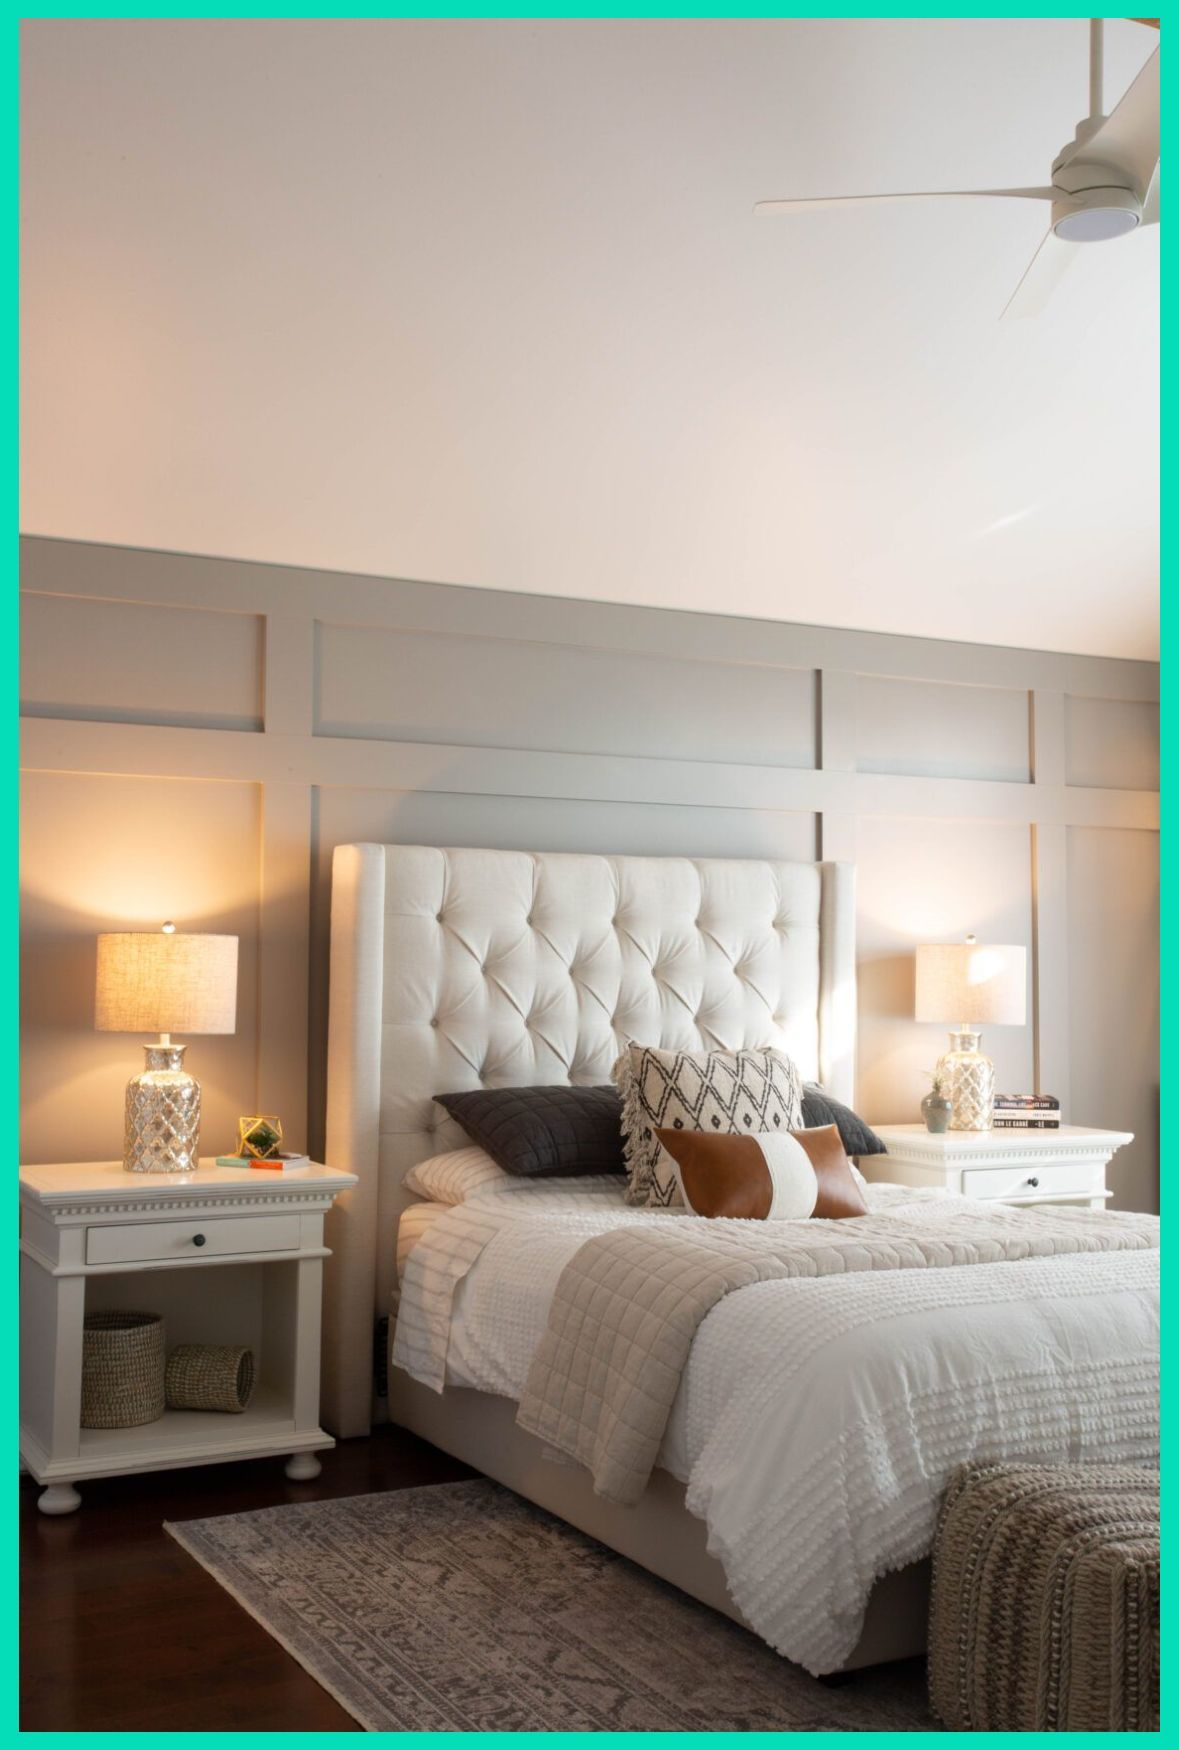 Deer Shiloh Master Bedroom Project Clark Aldine Wall Paneling Ideas Bedroom How To In 2020 Master Bedroom Inspiration Master Bedroom Accents Bedroom Panel